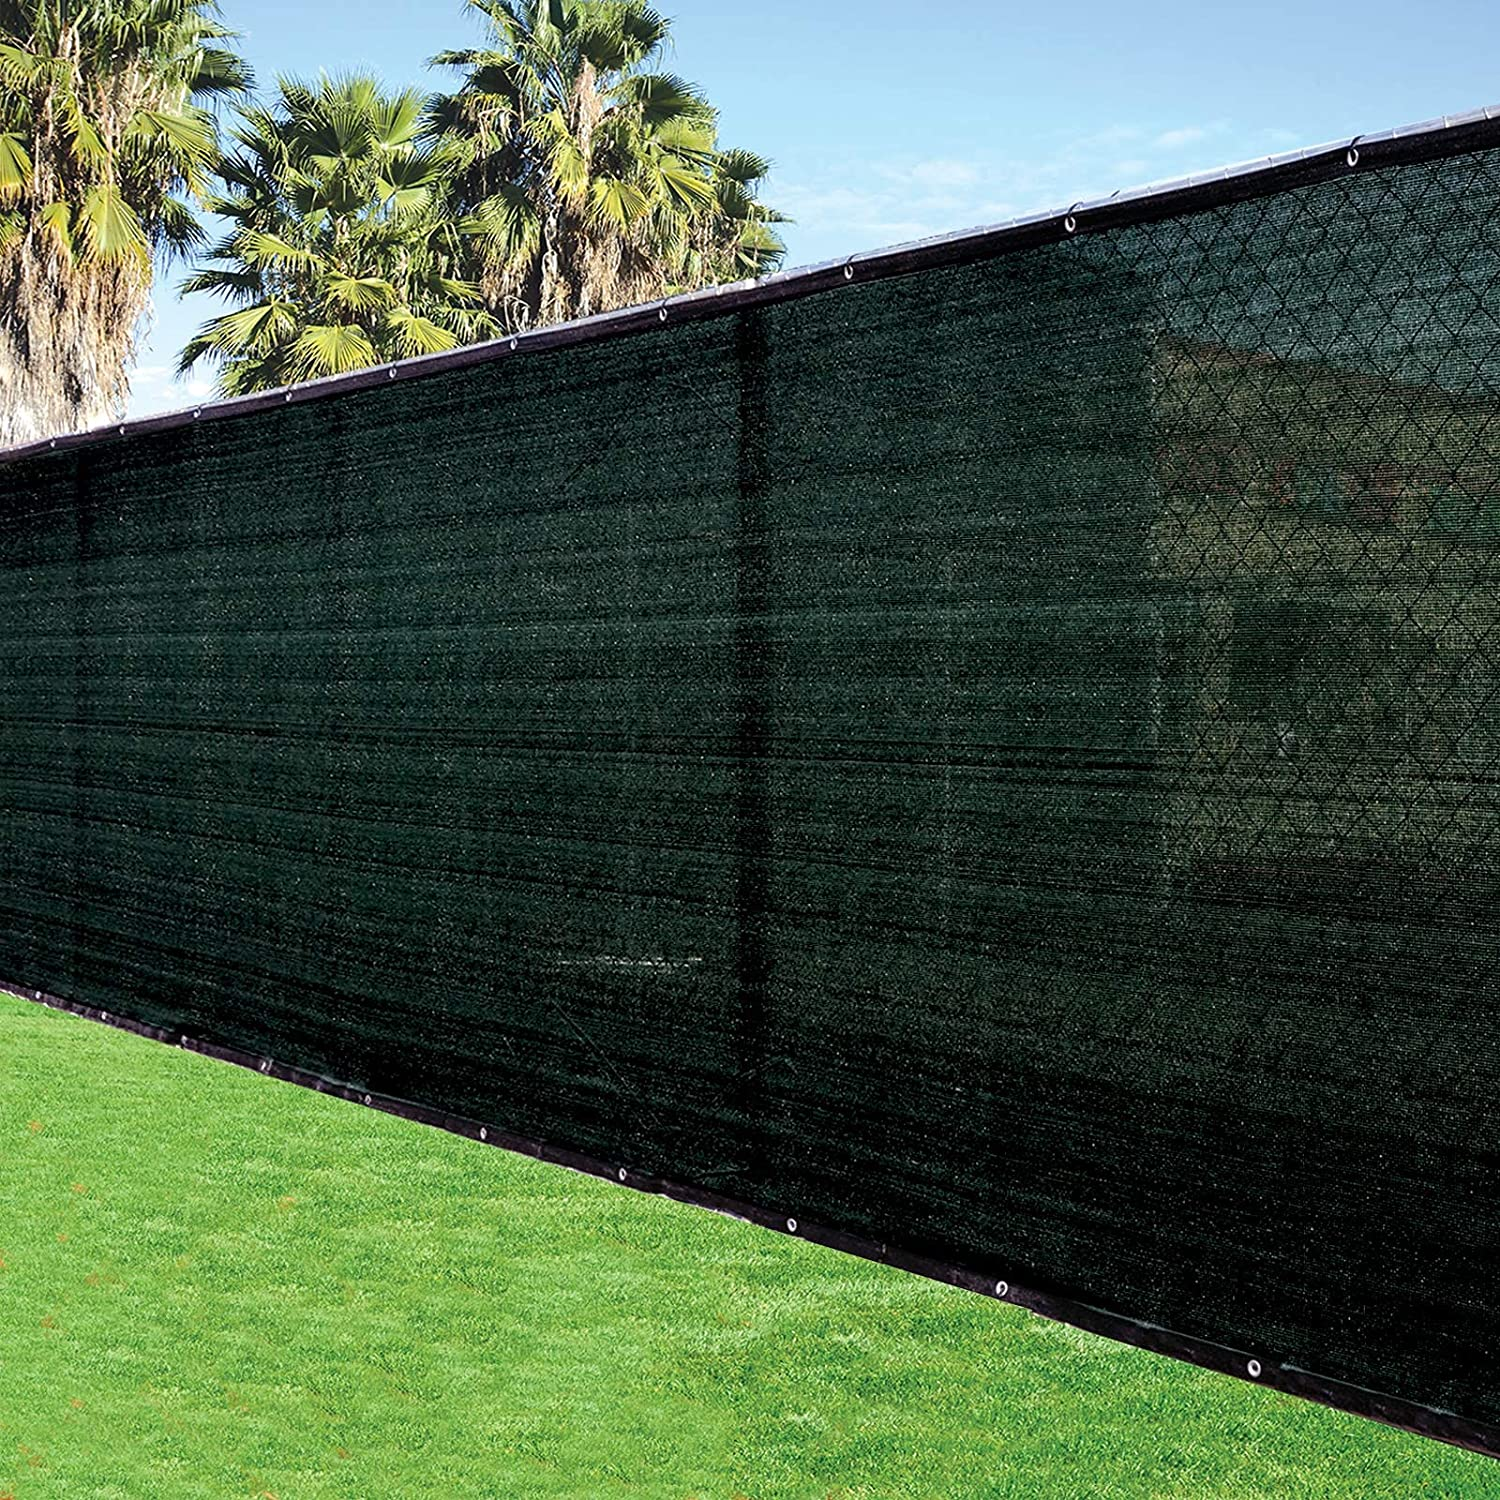 Fence4ever Max 89% List price OFF 6' x 50' 3rd Gen Windscree Screen Black Fence Privacy